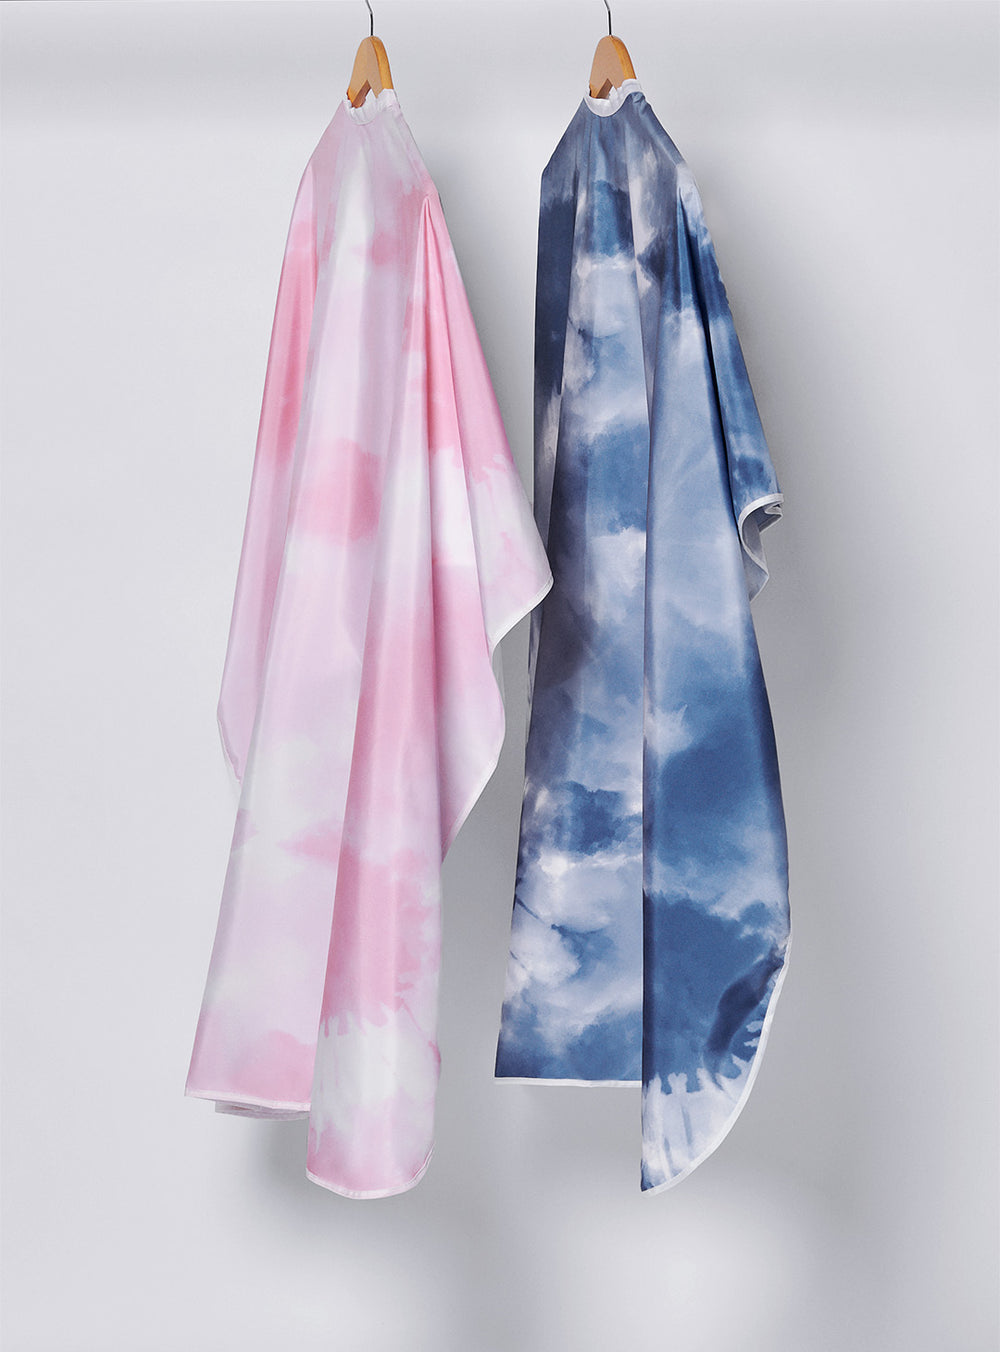 Fromm Pro Professional Hair Salon Blue & Pink Tie Dye Hairstyling Capes